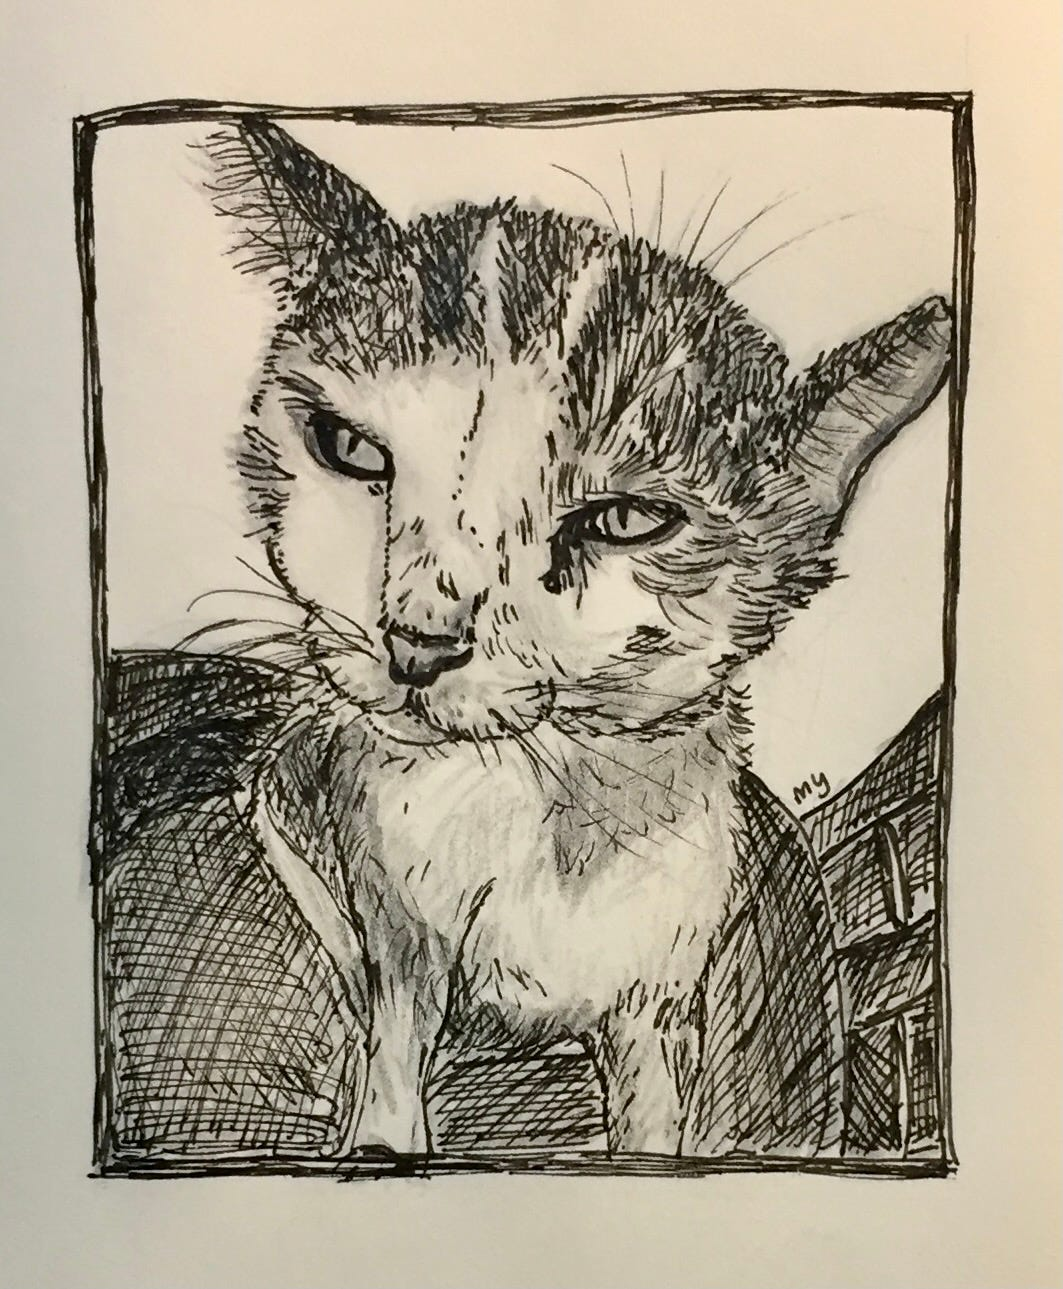 ink and pencil drawing of cat sitting on a chair